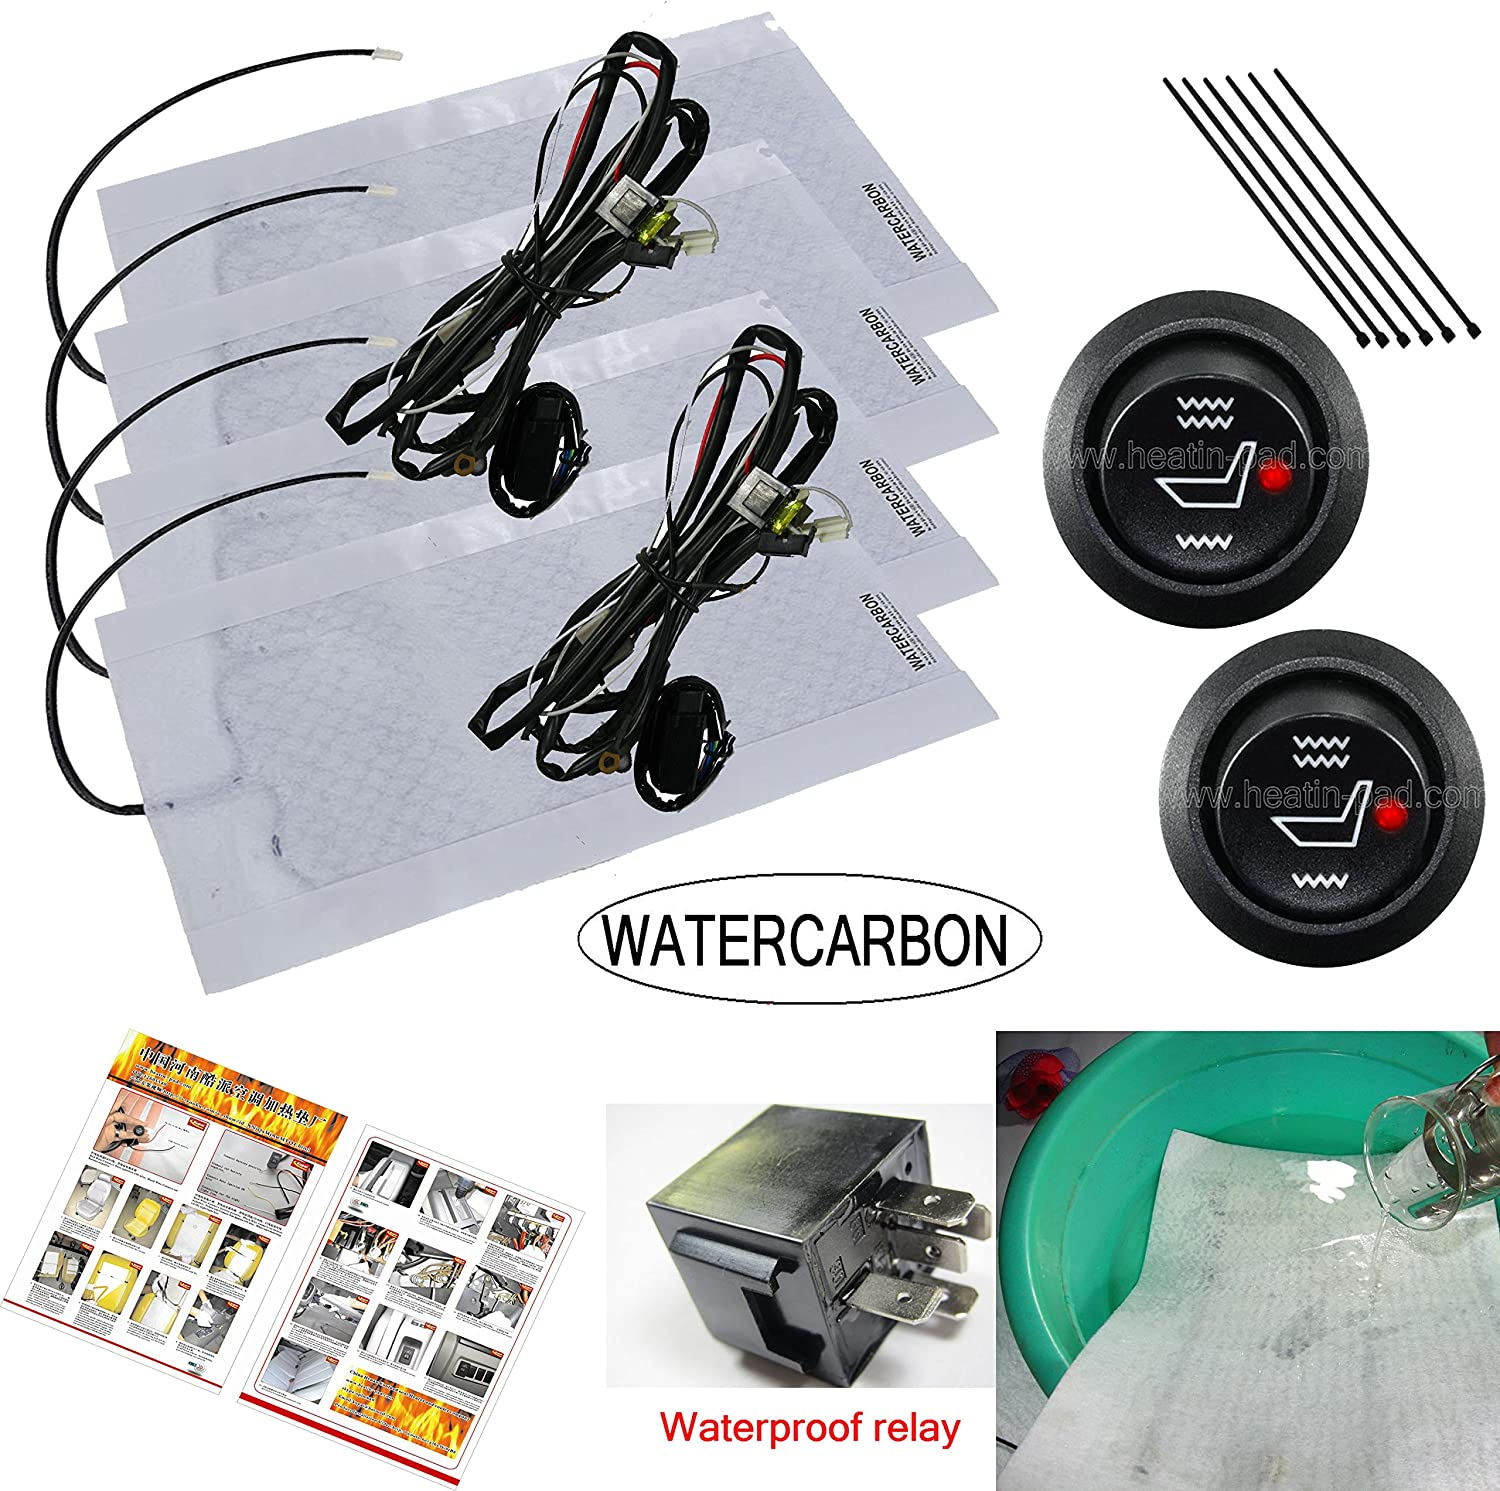 Electronic Equipment WATERCARBON Water Carbon 12V Premium Heated Seat Kits for Two Seats Universal Dual Settings 28mm/×28mm L//M//H 3-Gear Heating Switch Waterproof